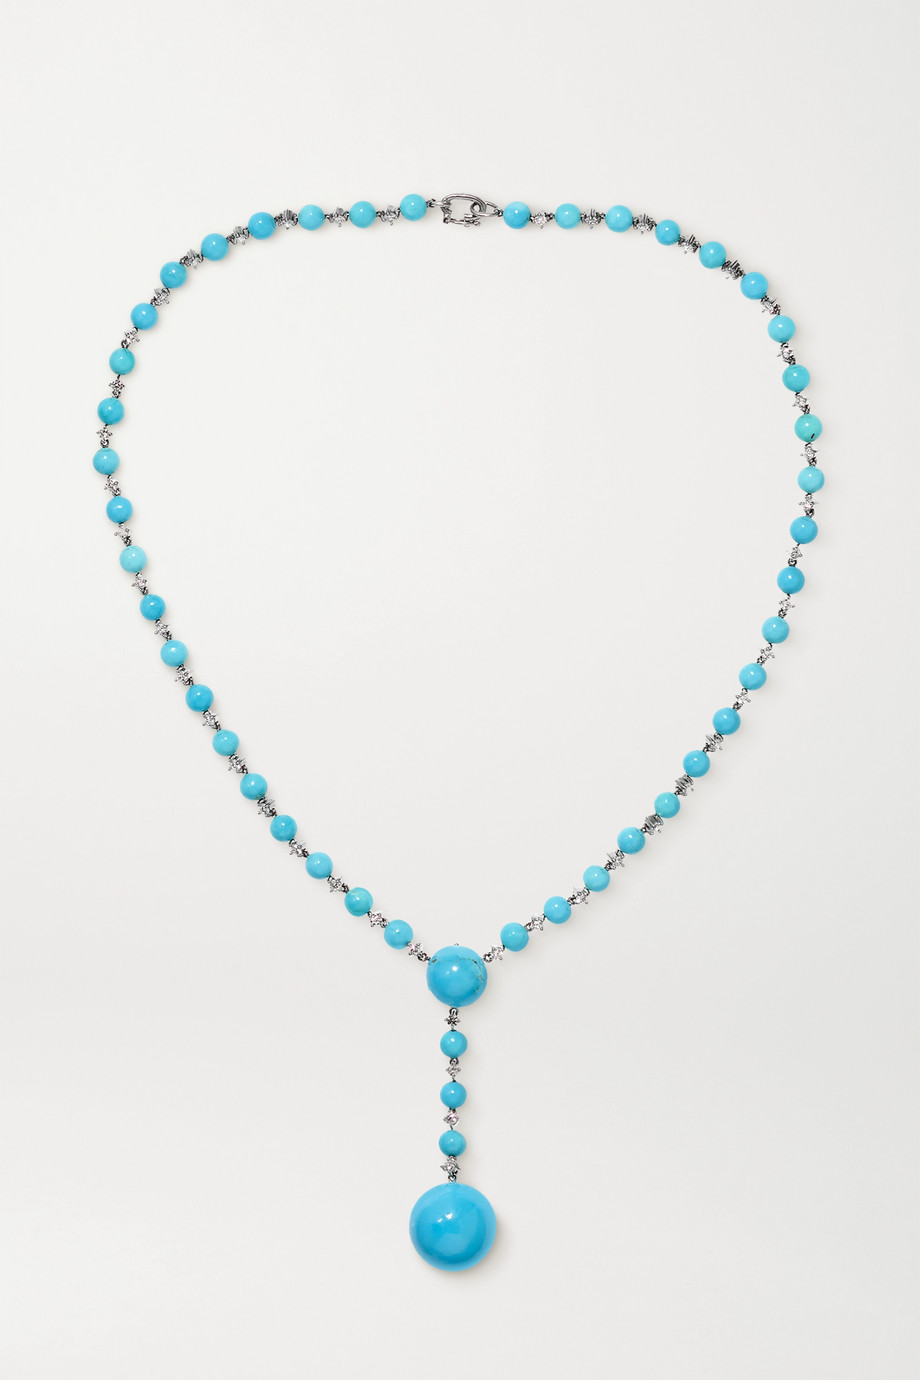 Irene Neuwirth Gumball 18-karat white gold, turquoise and diamond necklace